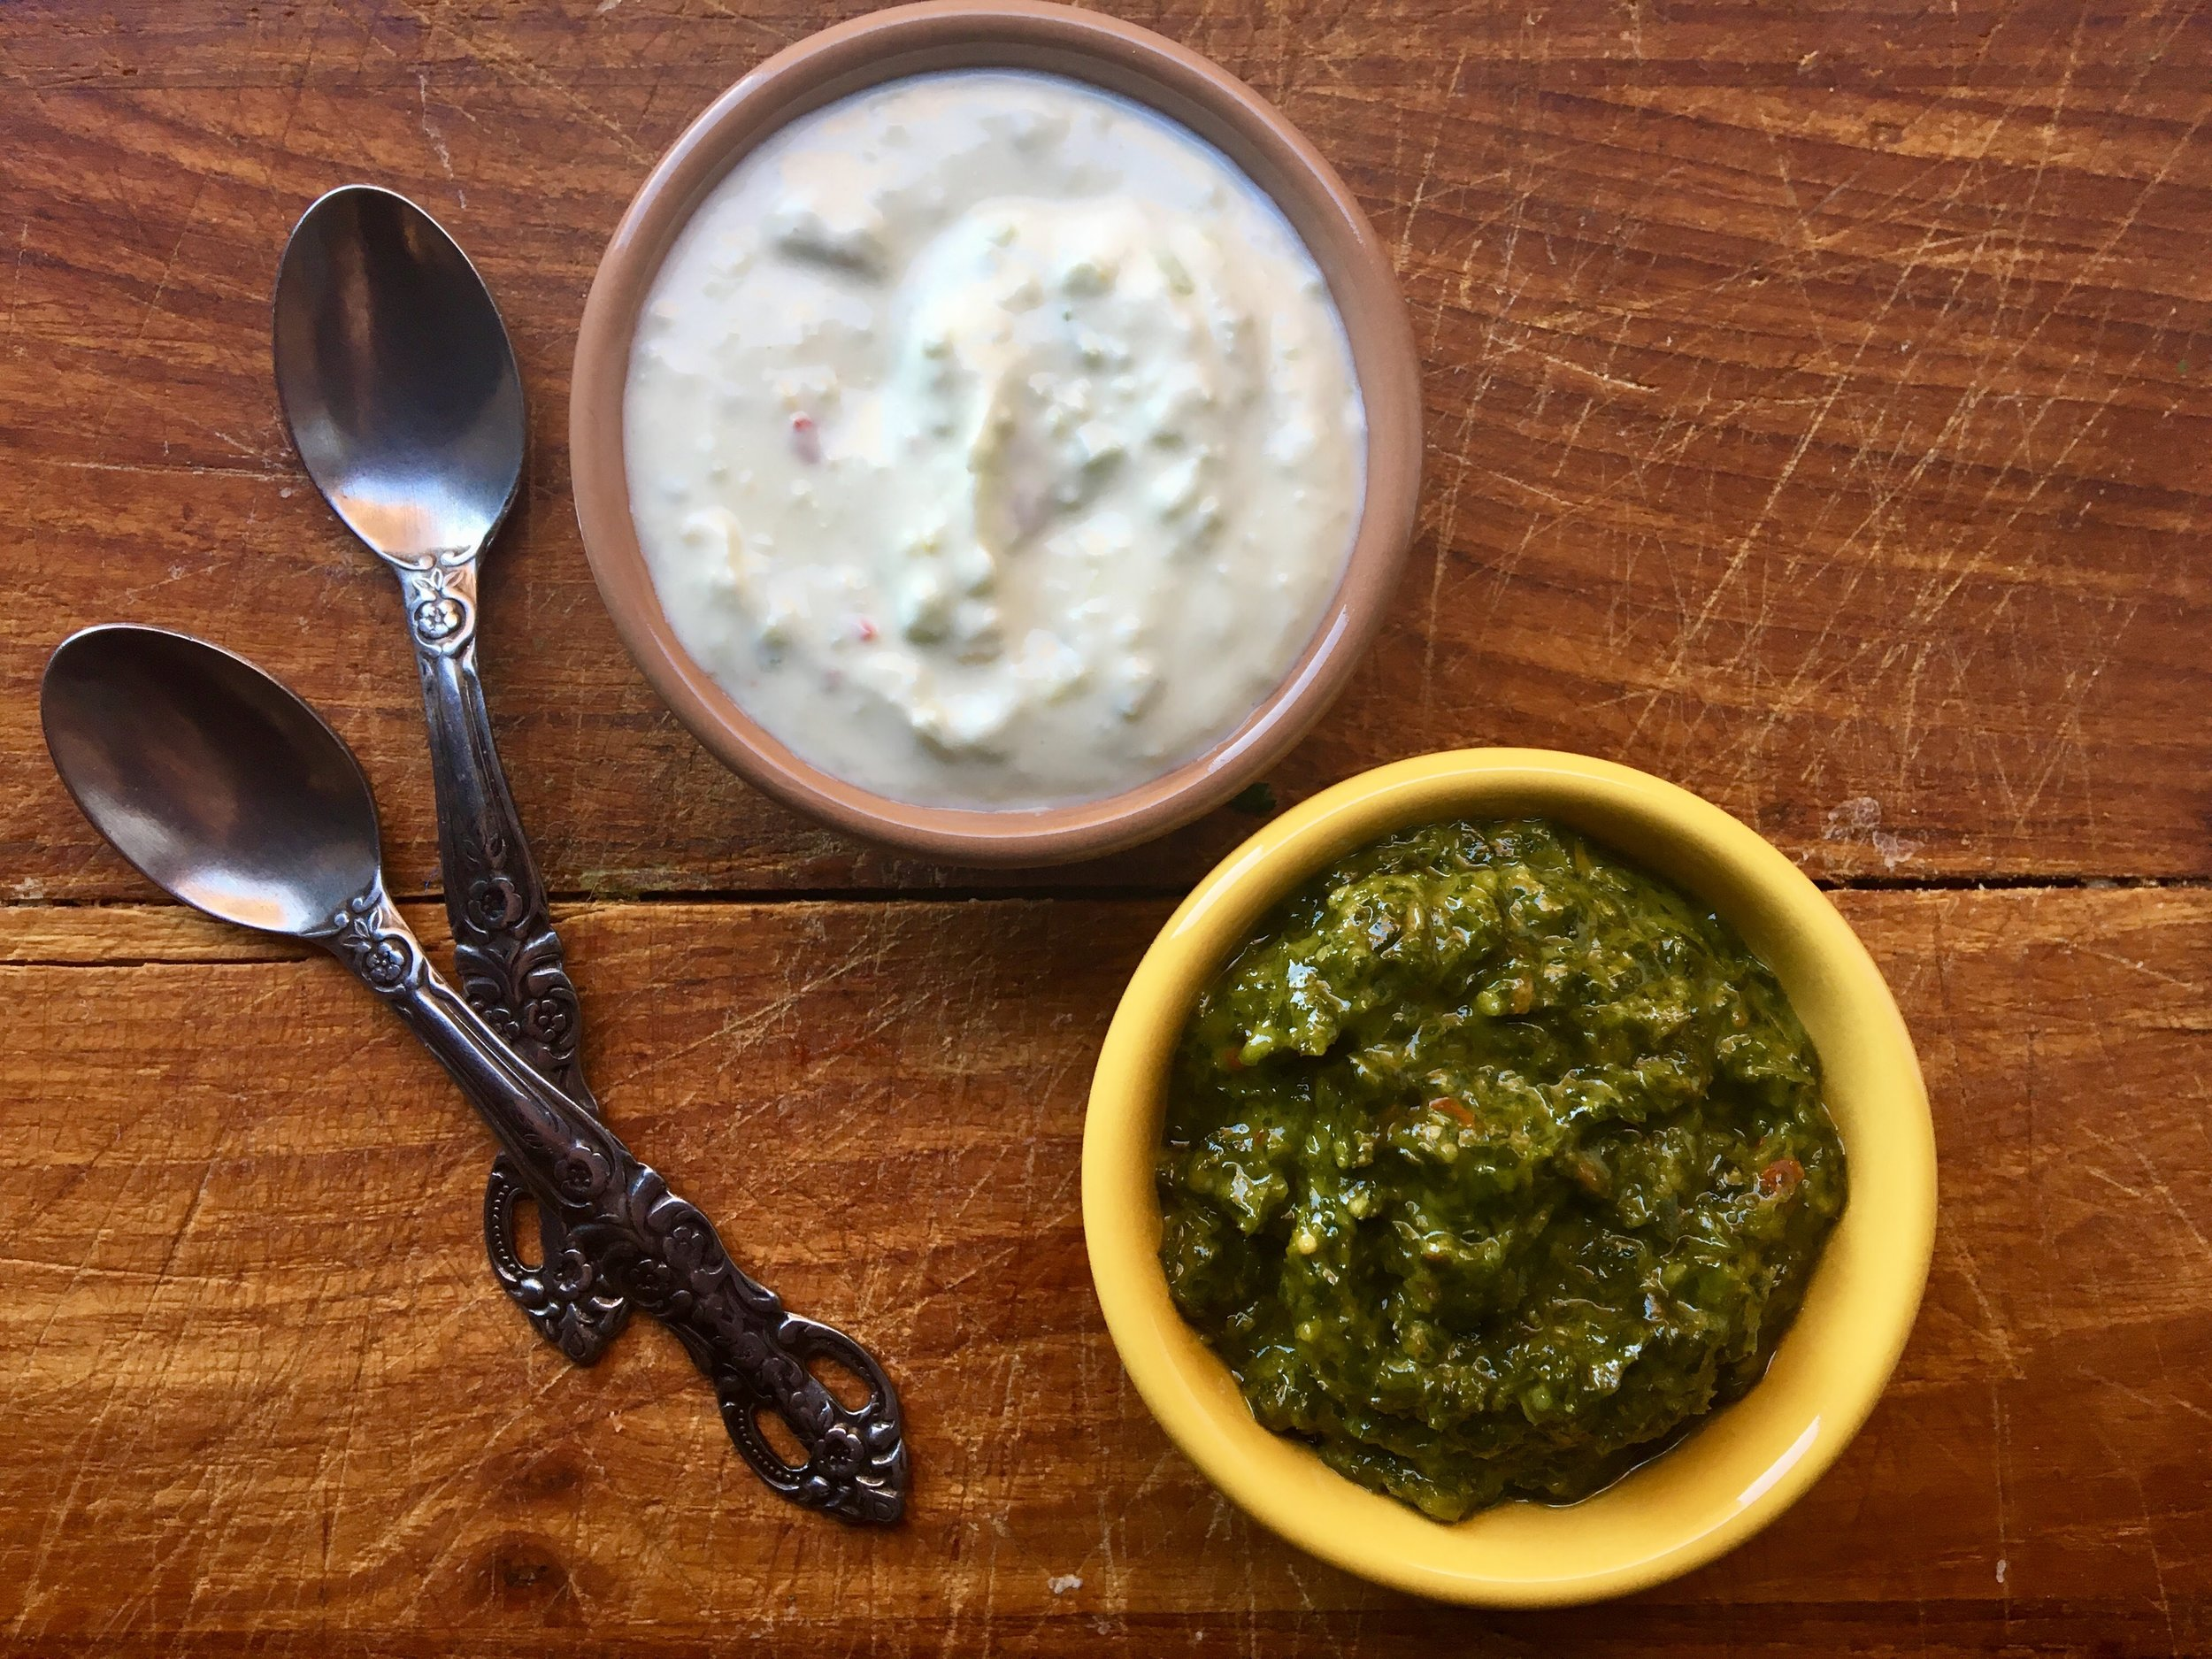 green sauce + jalapeno yogurt